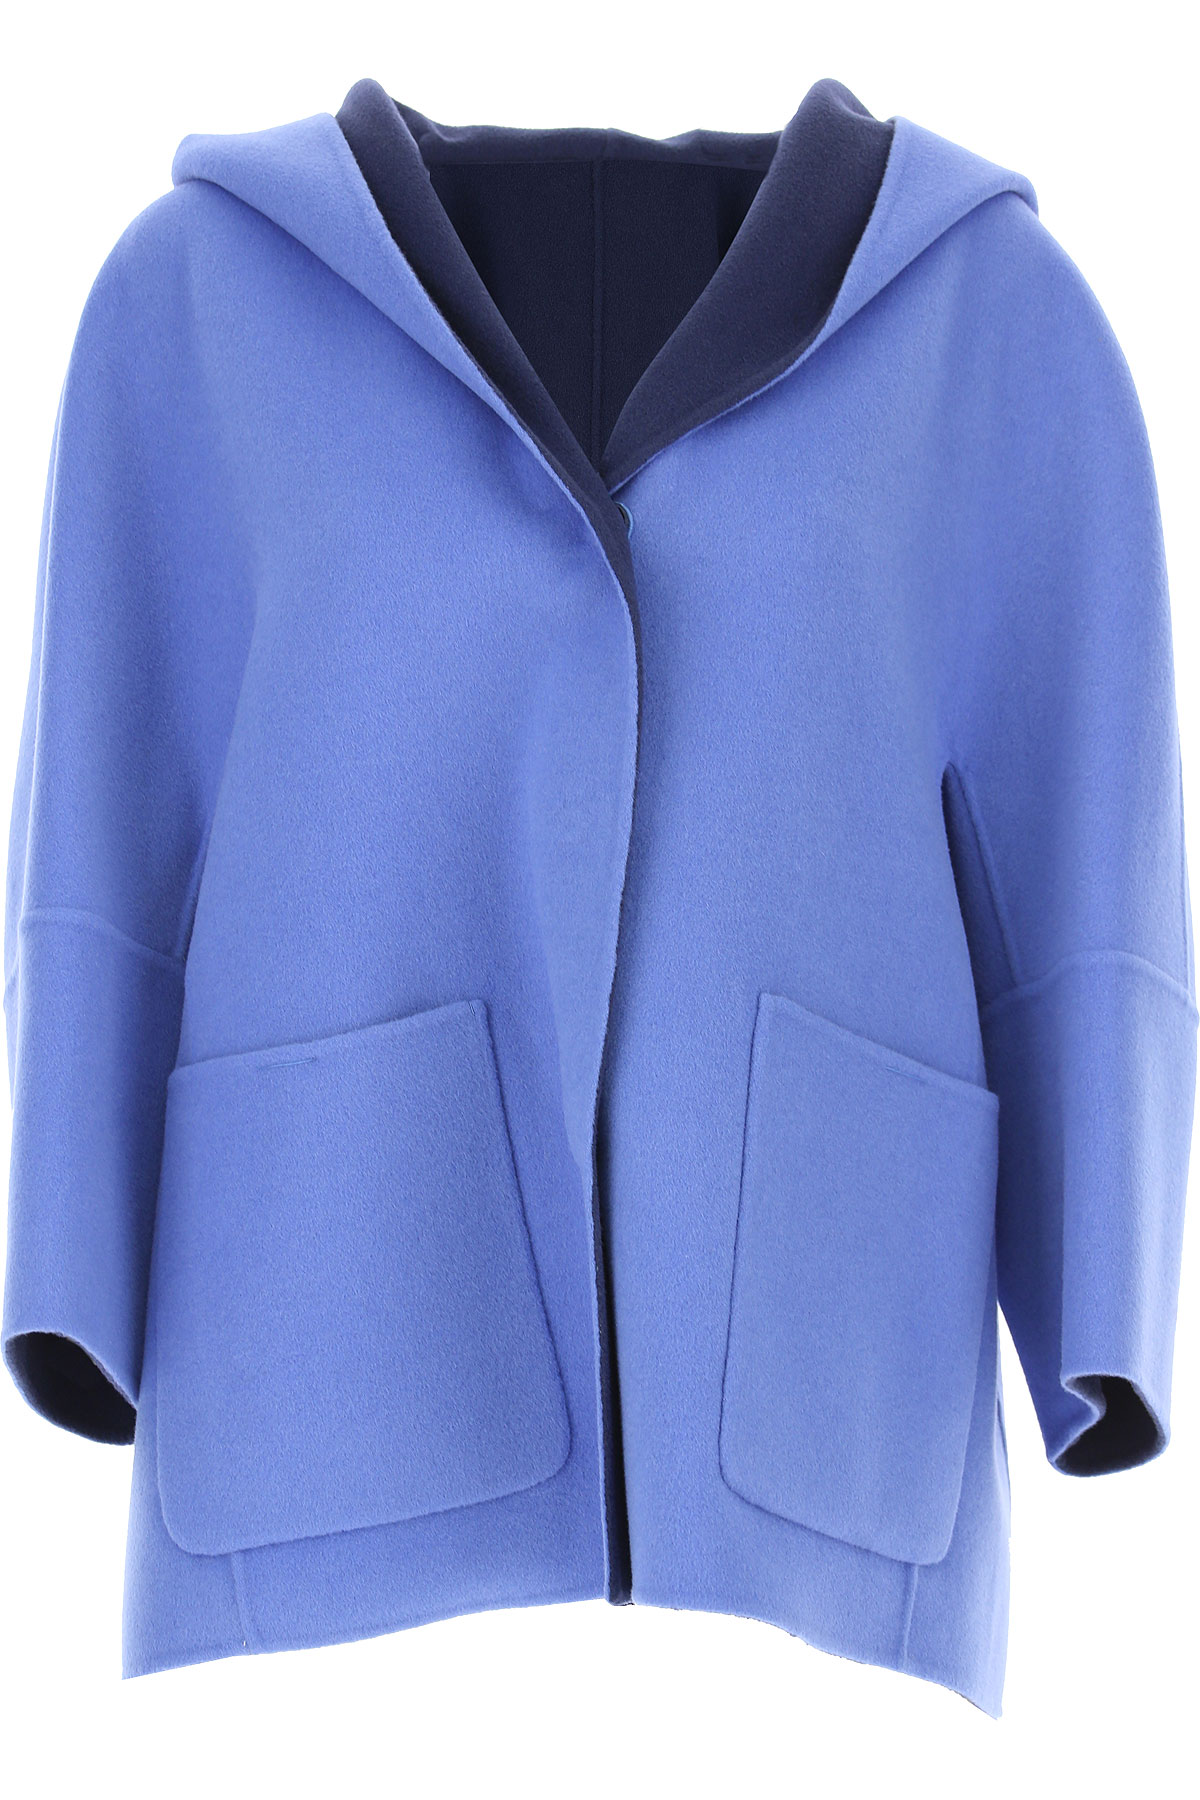 Image of Weekend by Max Mara Blazer for Women, Sky Blue, Wool, 2017, 4 6 8